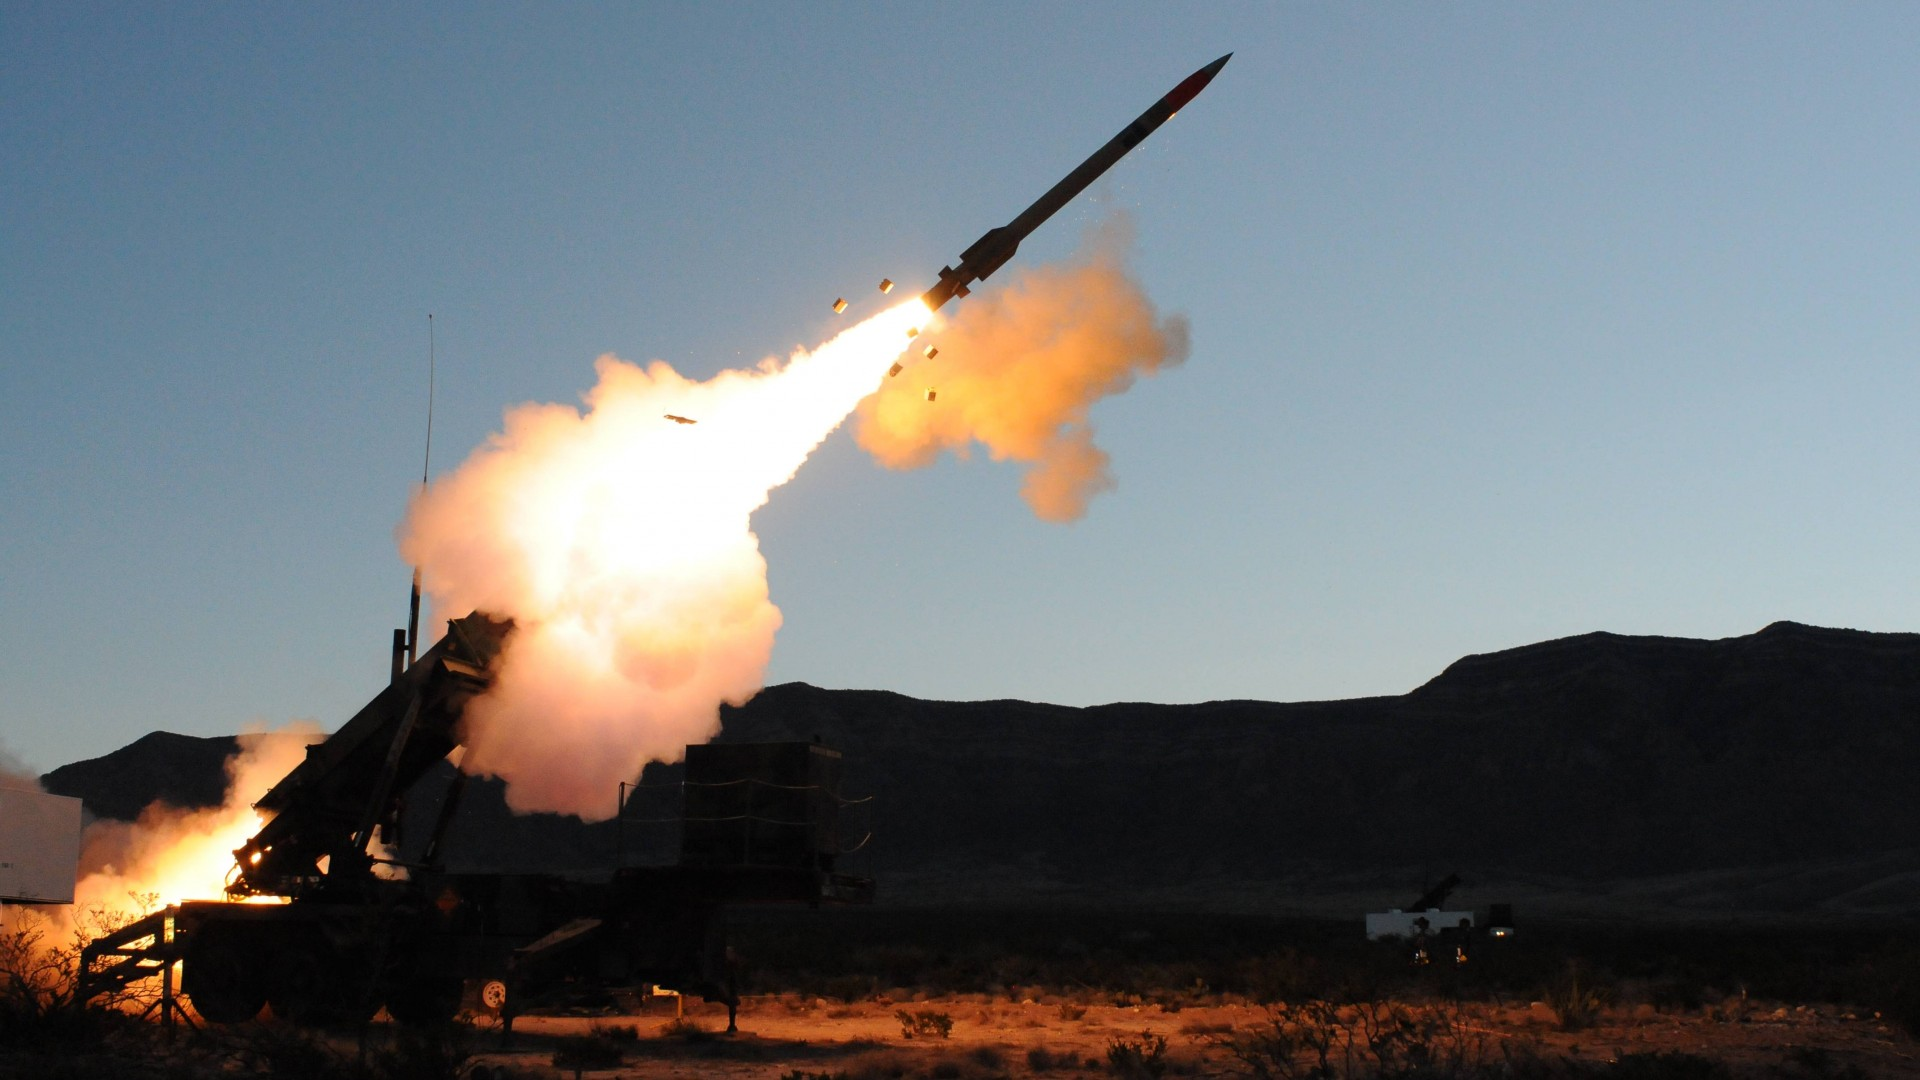 MIM-104, Patriot, SAM, missile system, Raytheon, MIM-104F, PAC-3, USA Army, missile firing (horizontal)